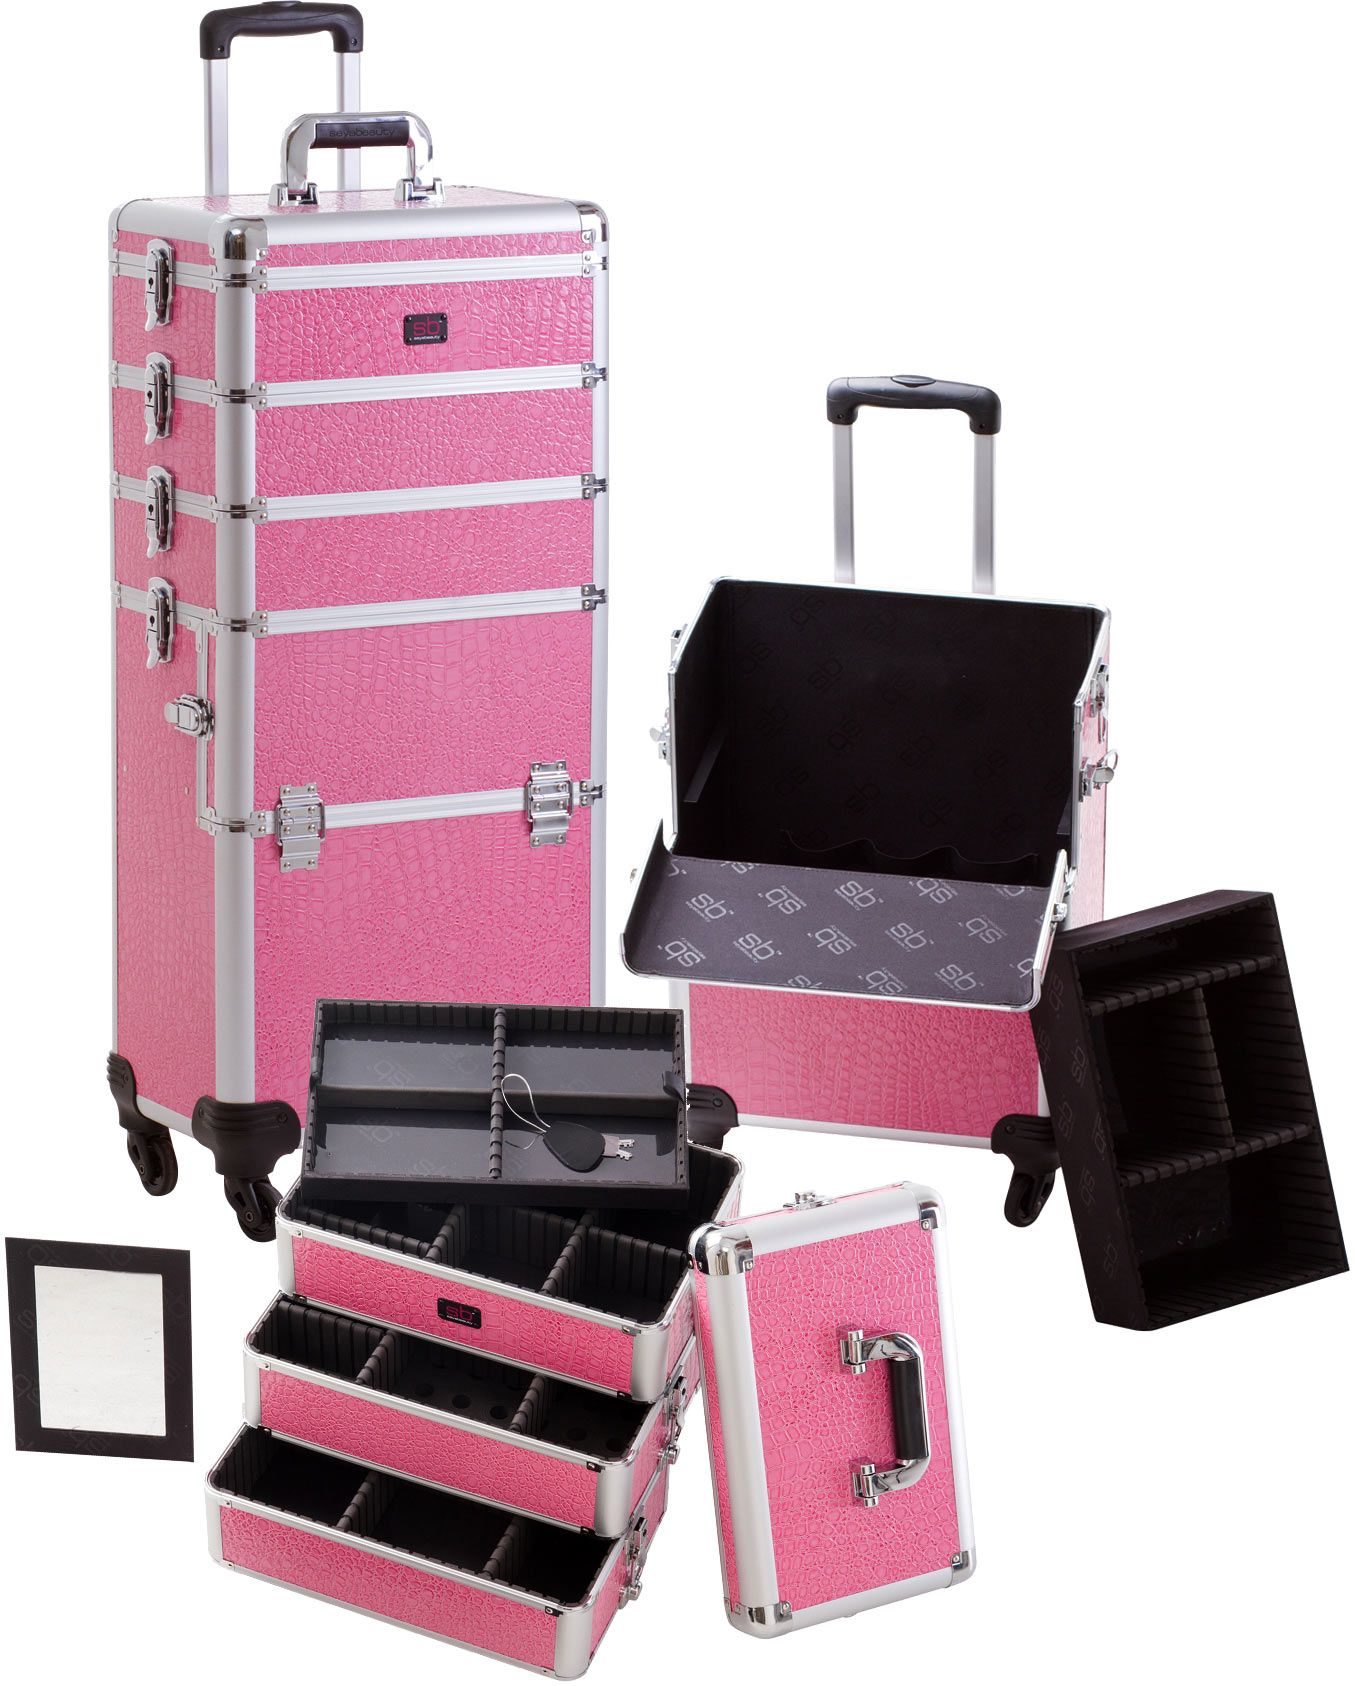 Pink Croco Makeup Train Case with 4 Spinner Wheels, only